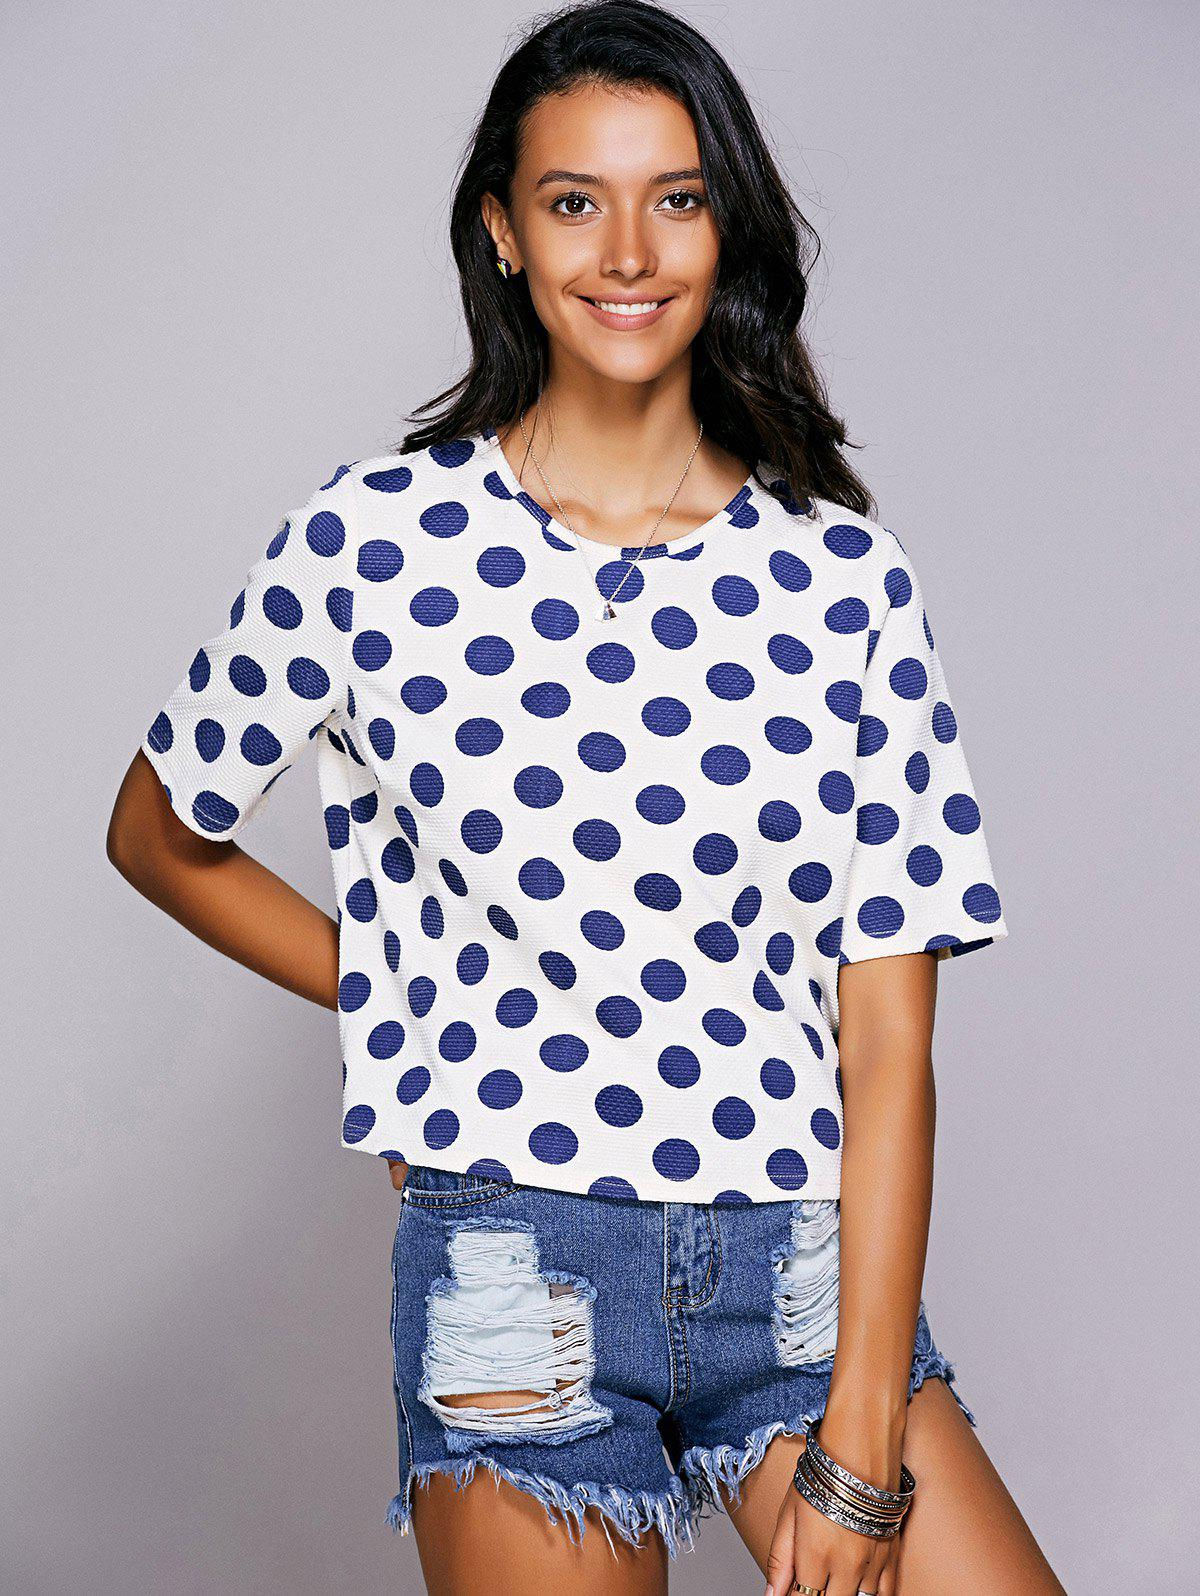 Casual Women's Jewel Neck Polka Dot Short Sleeve Tee - BLUE S